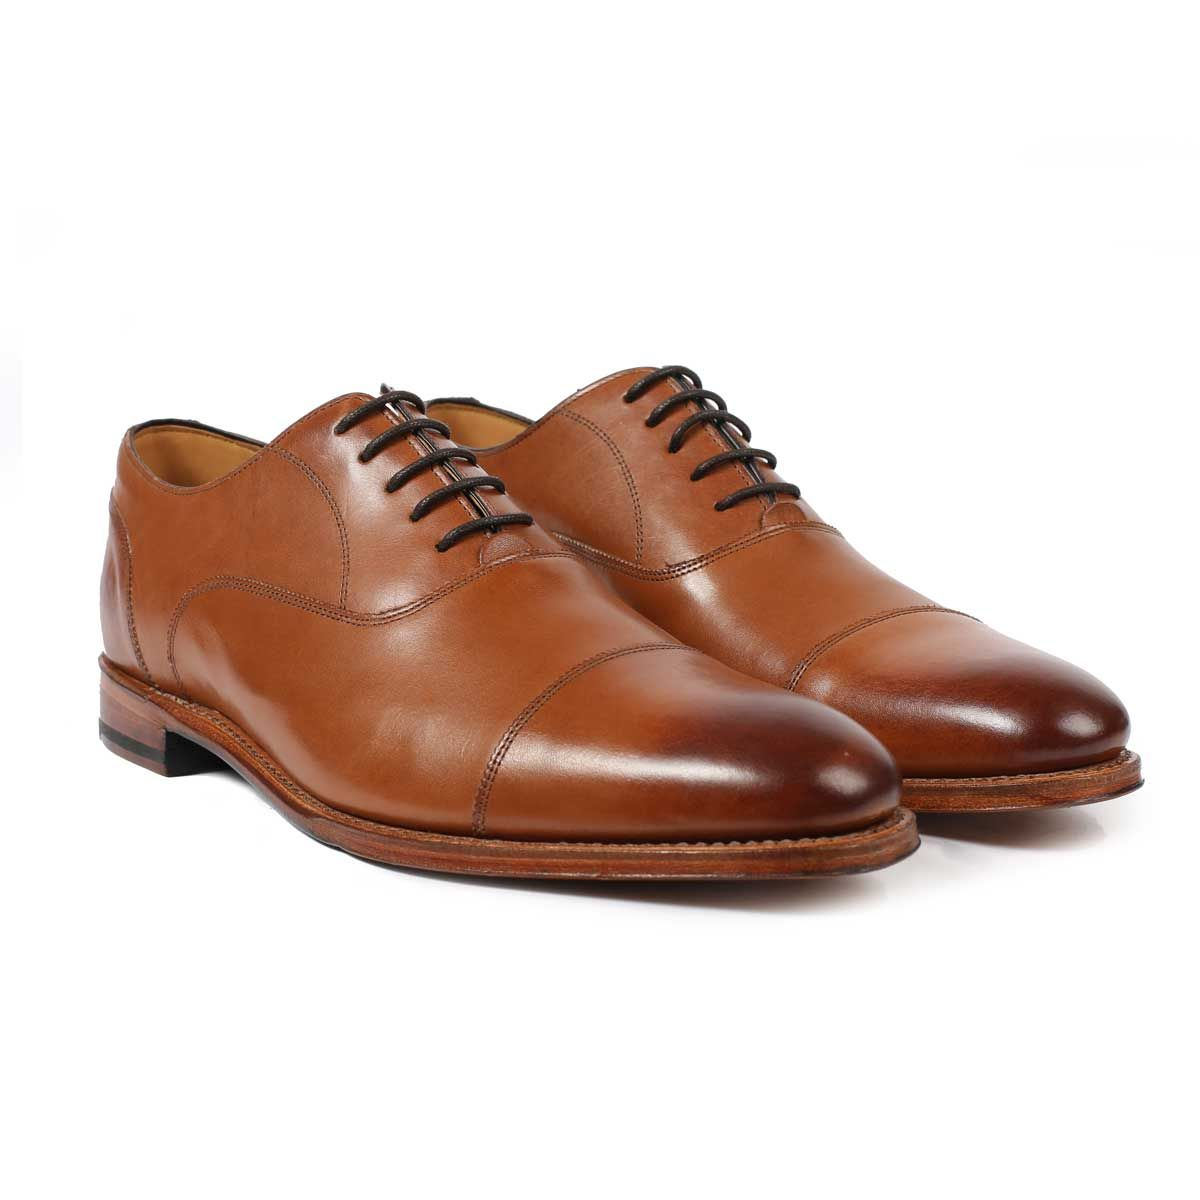 Oliver Sweeney Leadenhall Dark Tan - Formal Calf Leather Shoe